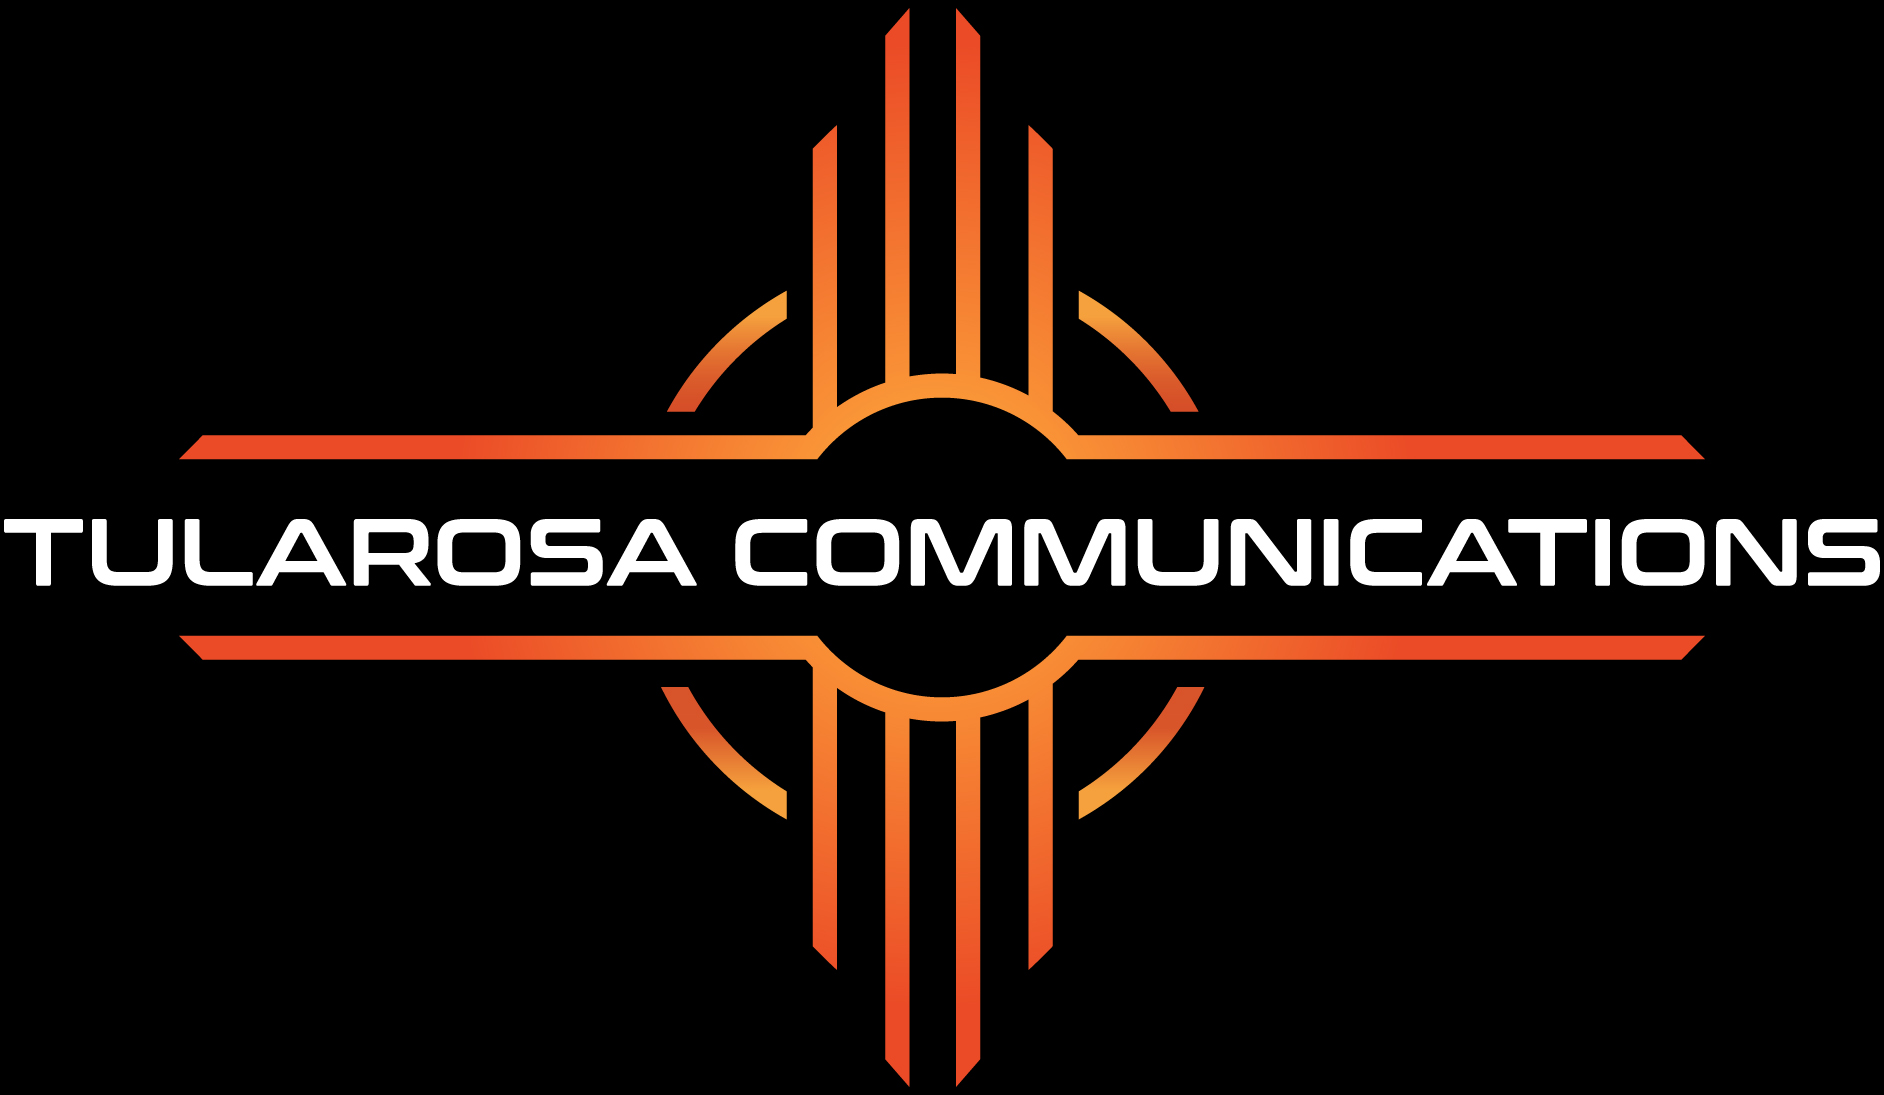 Tularosa Communications